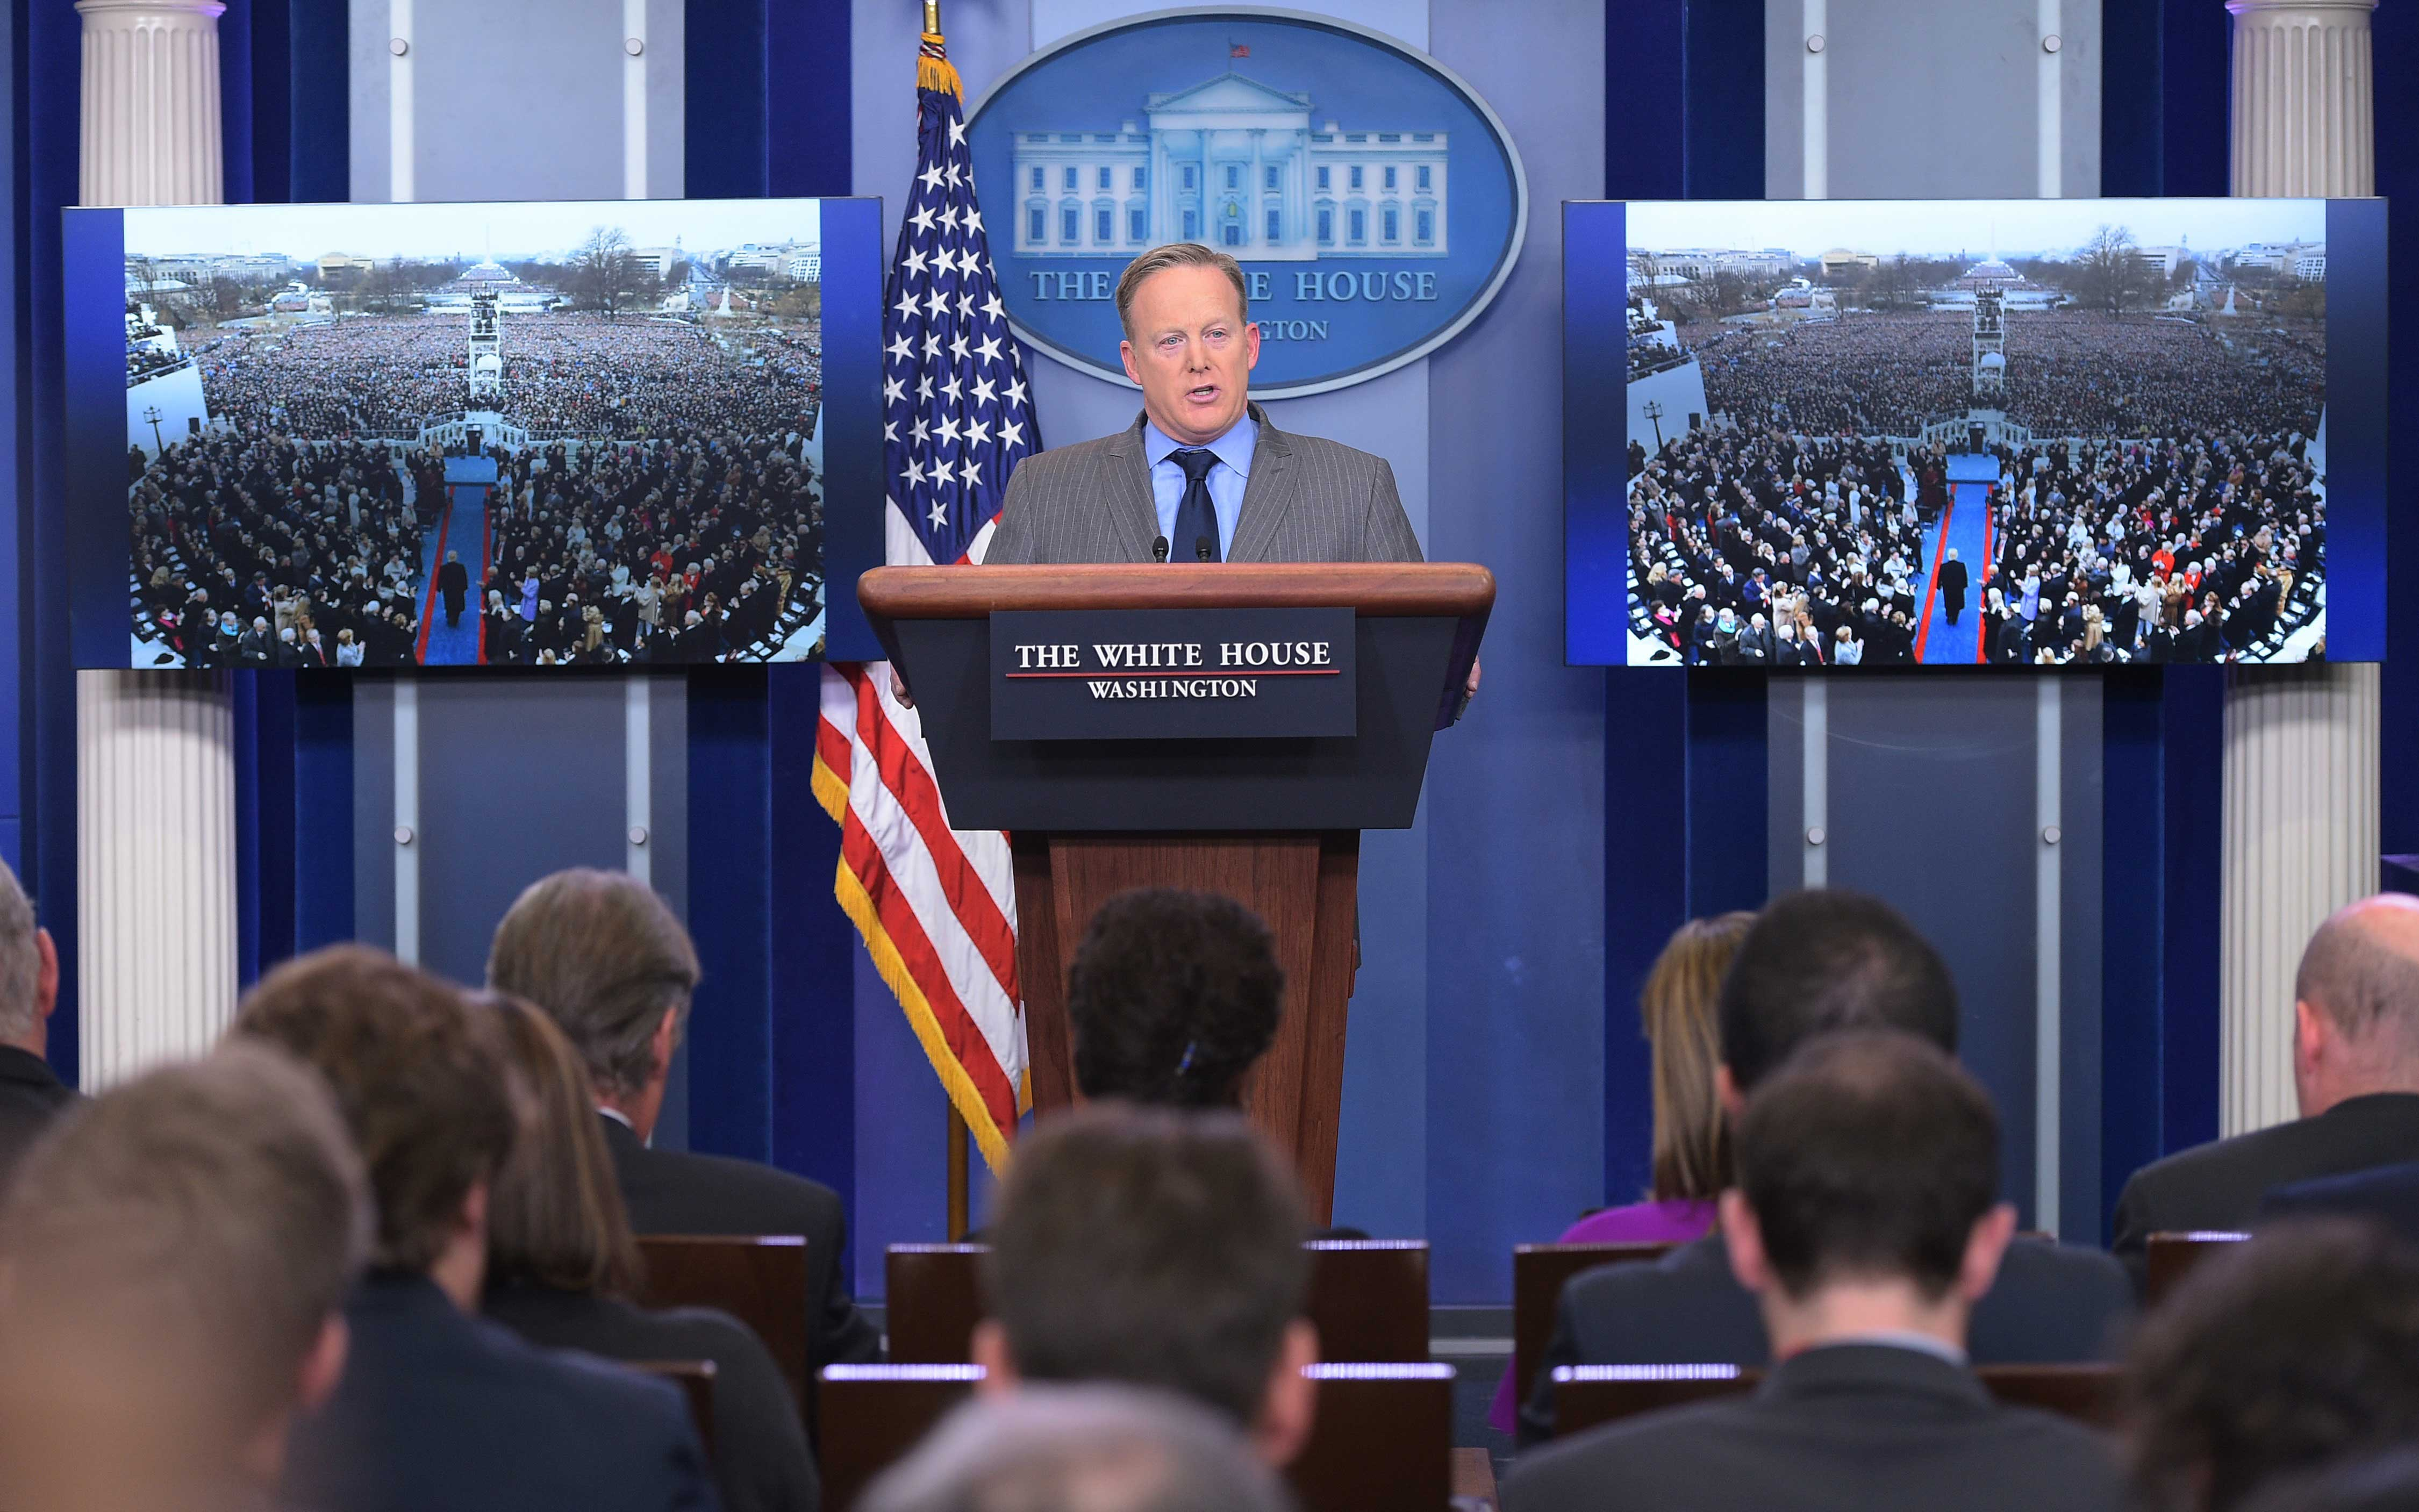 White House Press Secretary Sean Spicer delivers a statement in the Brady Briefing Room of the White House on Jan. 21, 2017.